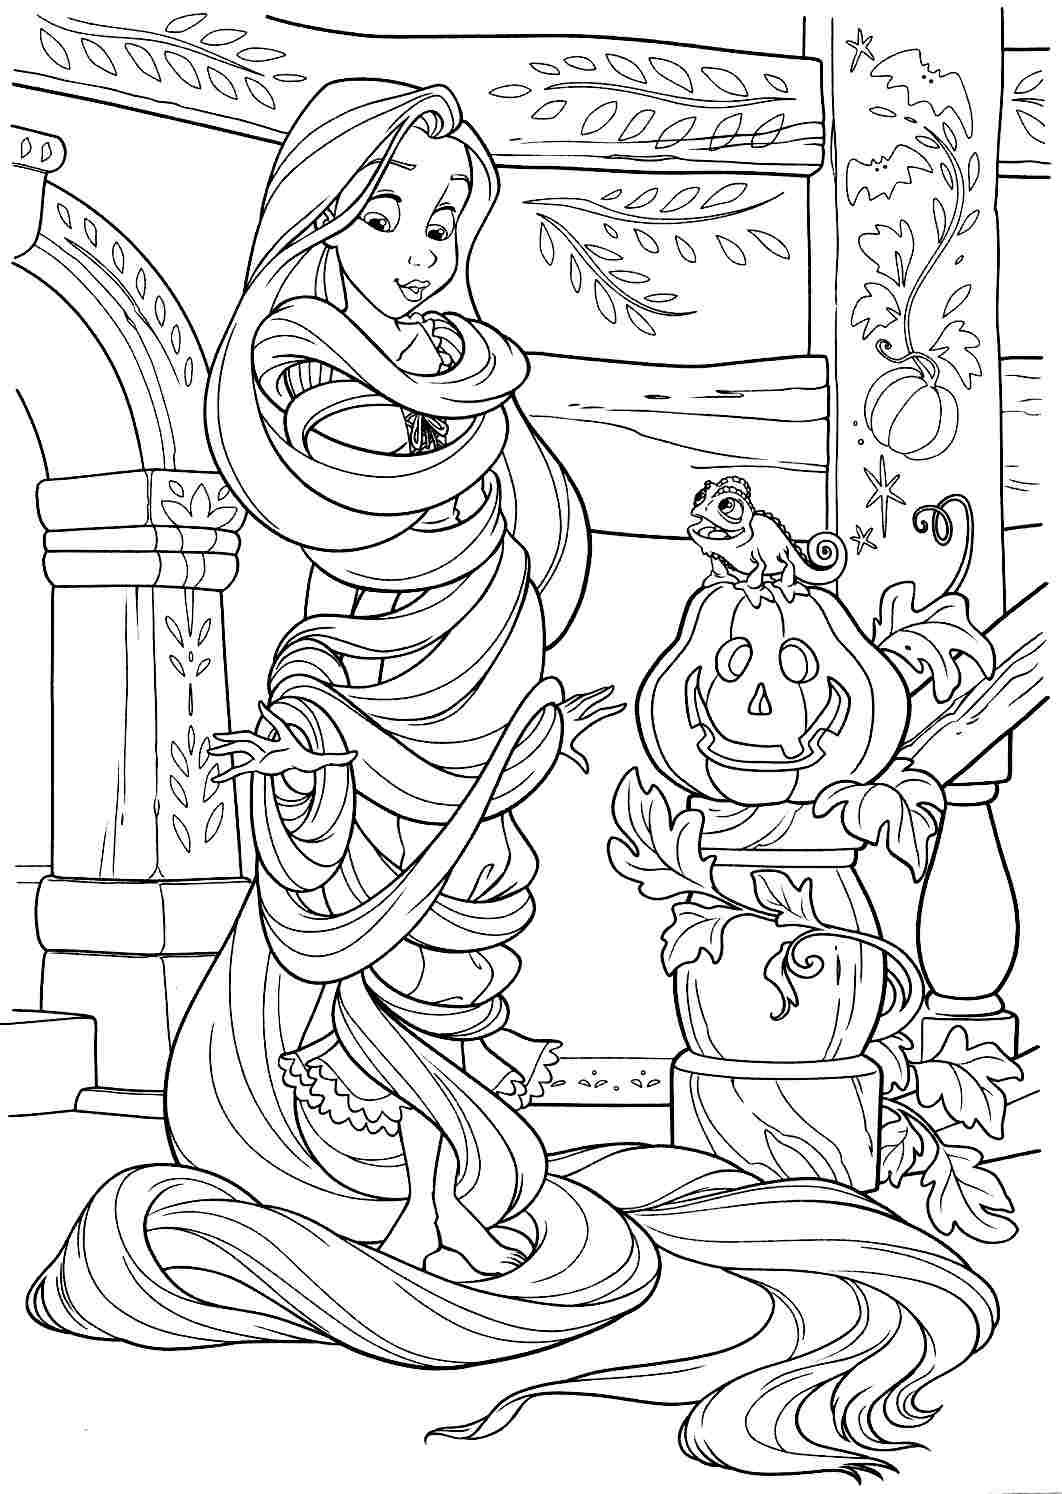 colouring pages disney princess tangled rapunzel printable